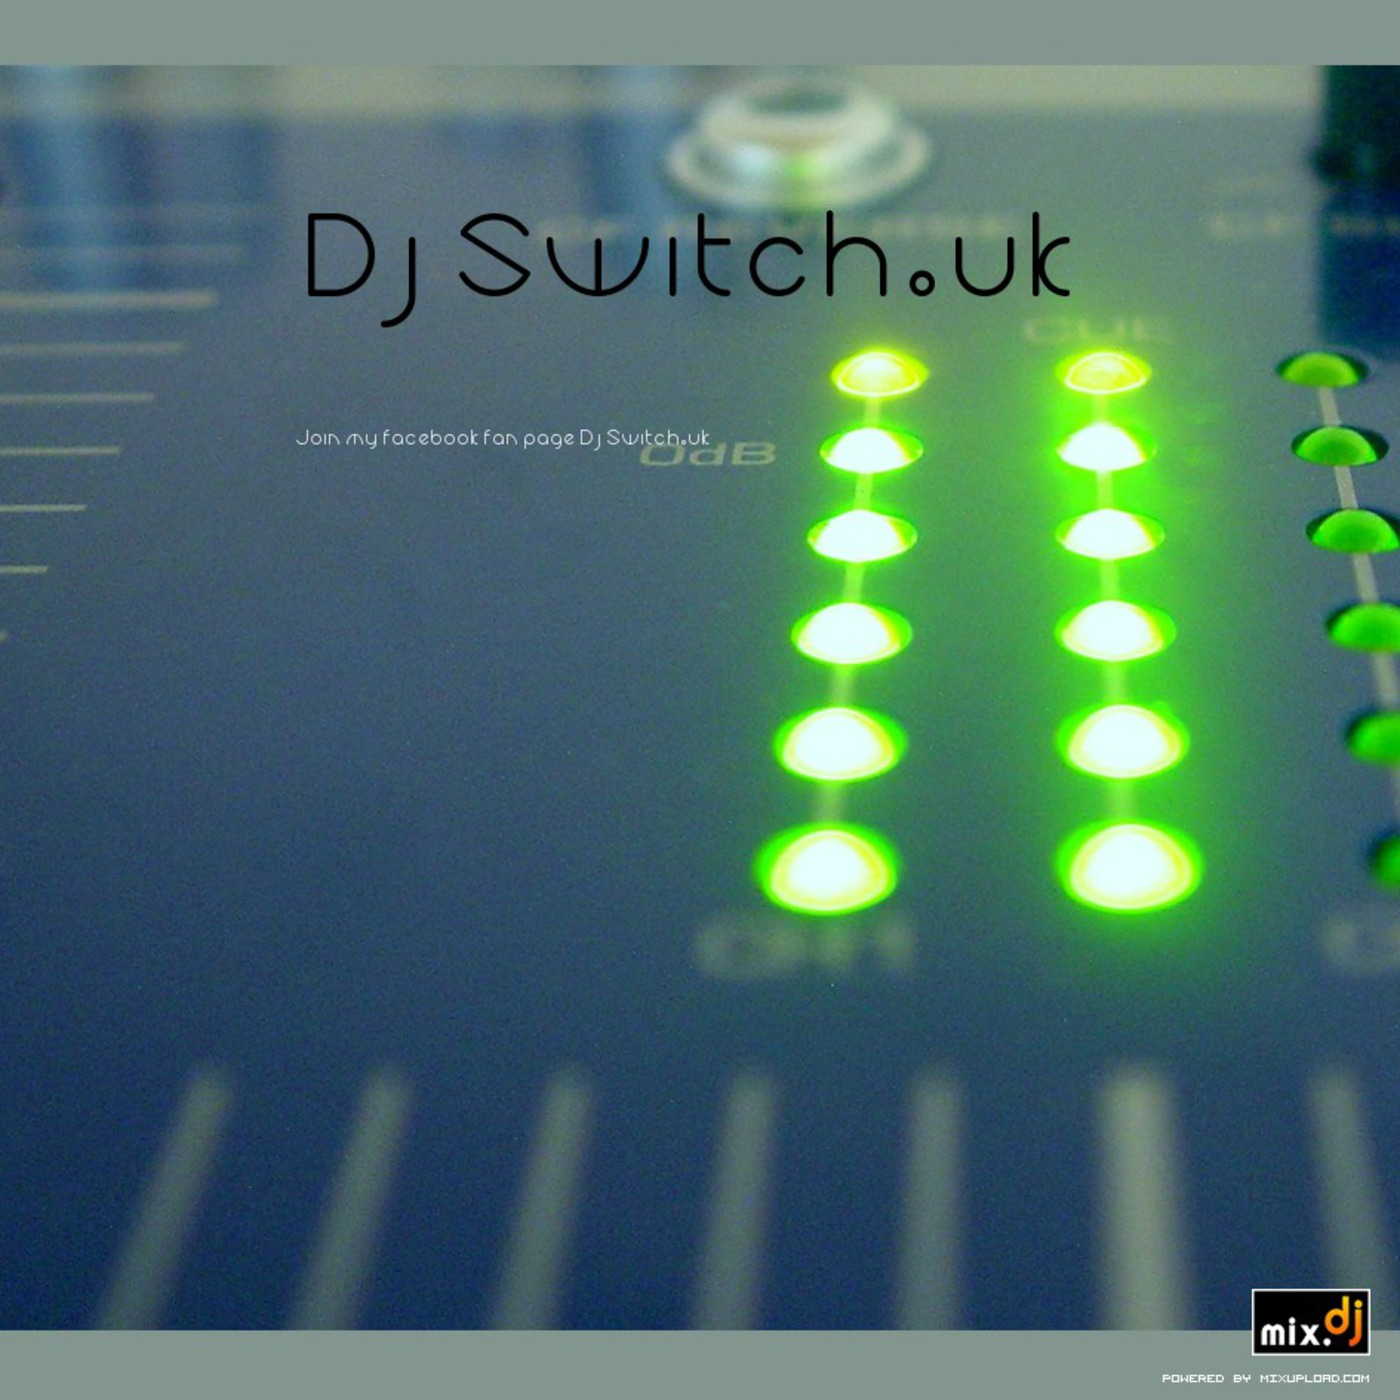 Dj Switch.uk's Switched on